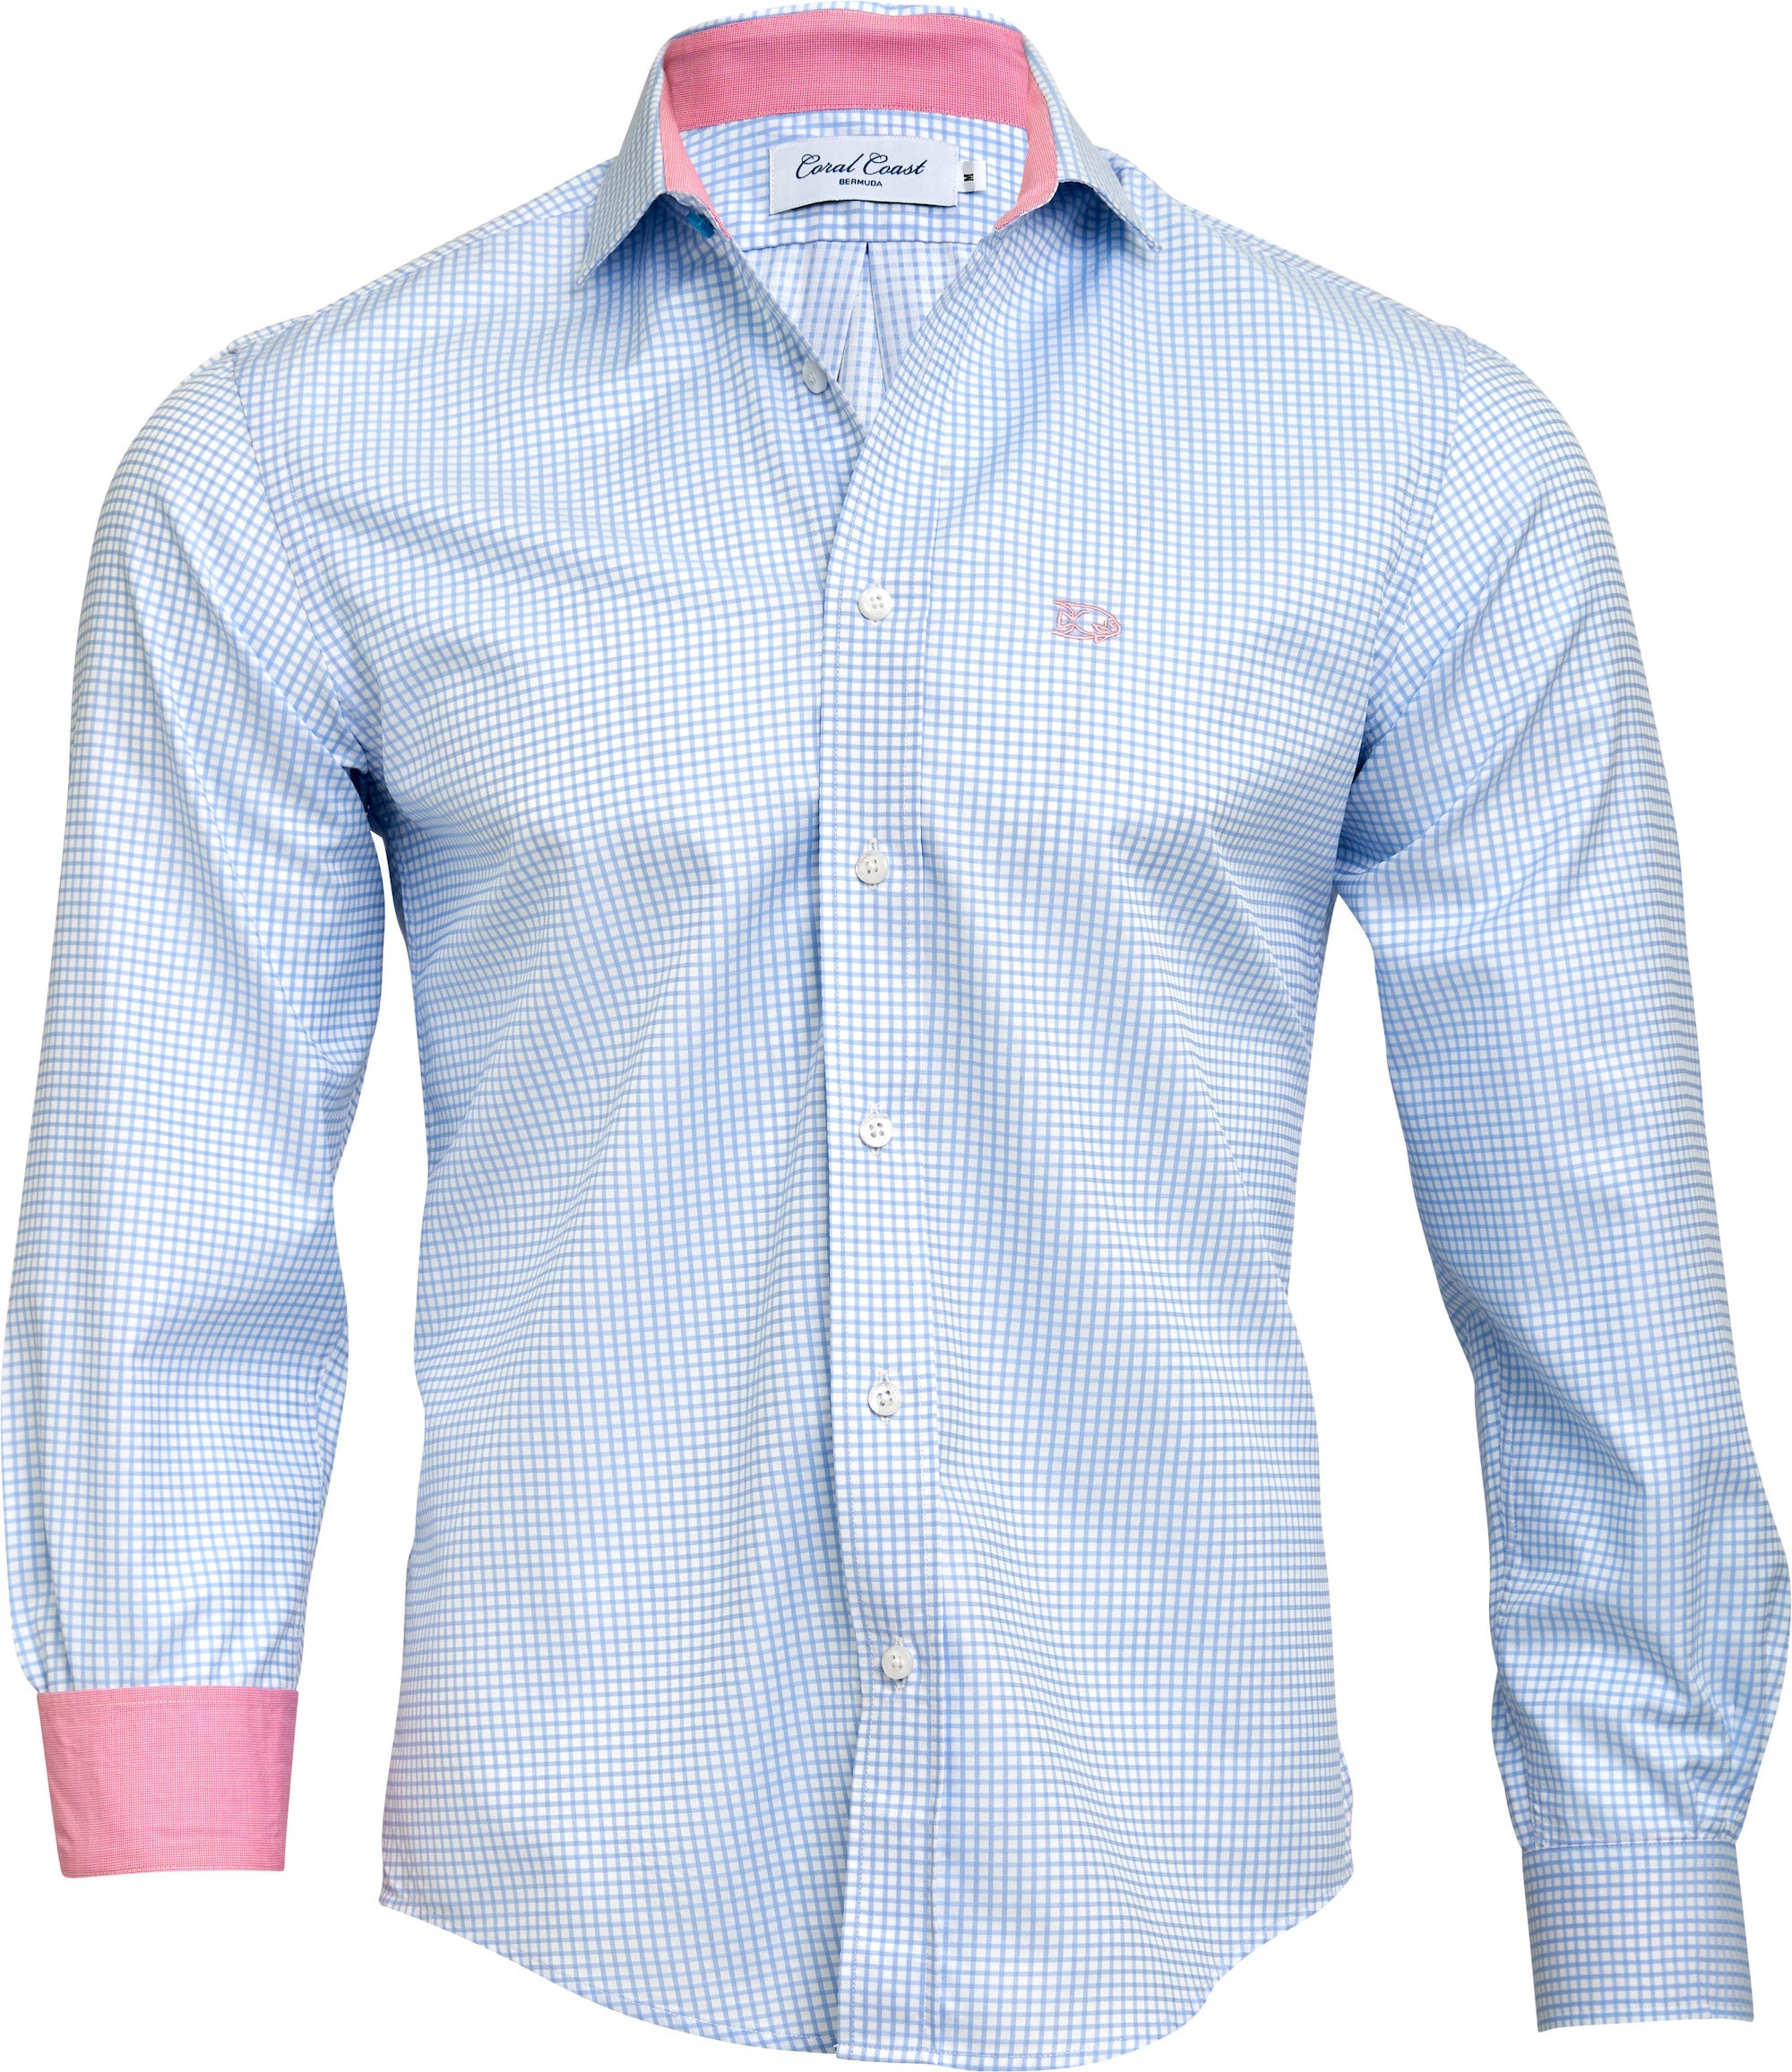 LIGHT BLUE WINDOWPANE